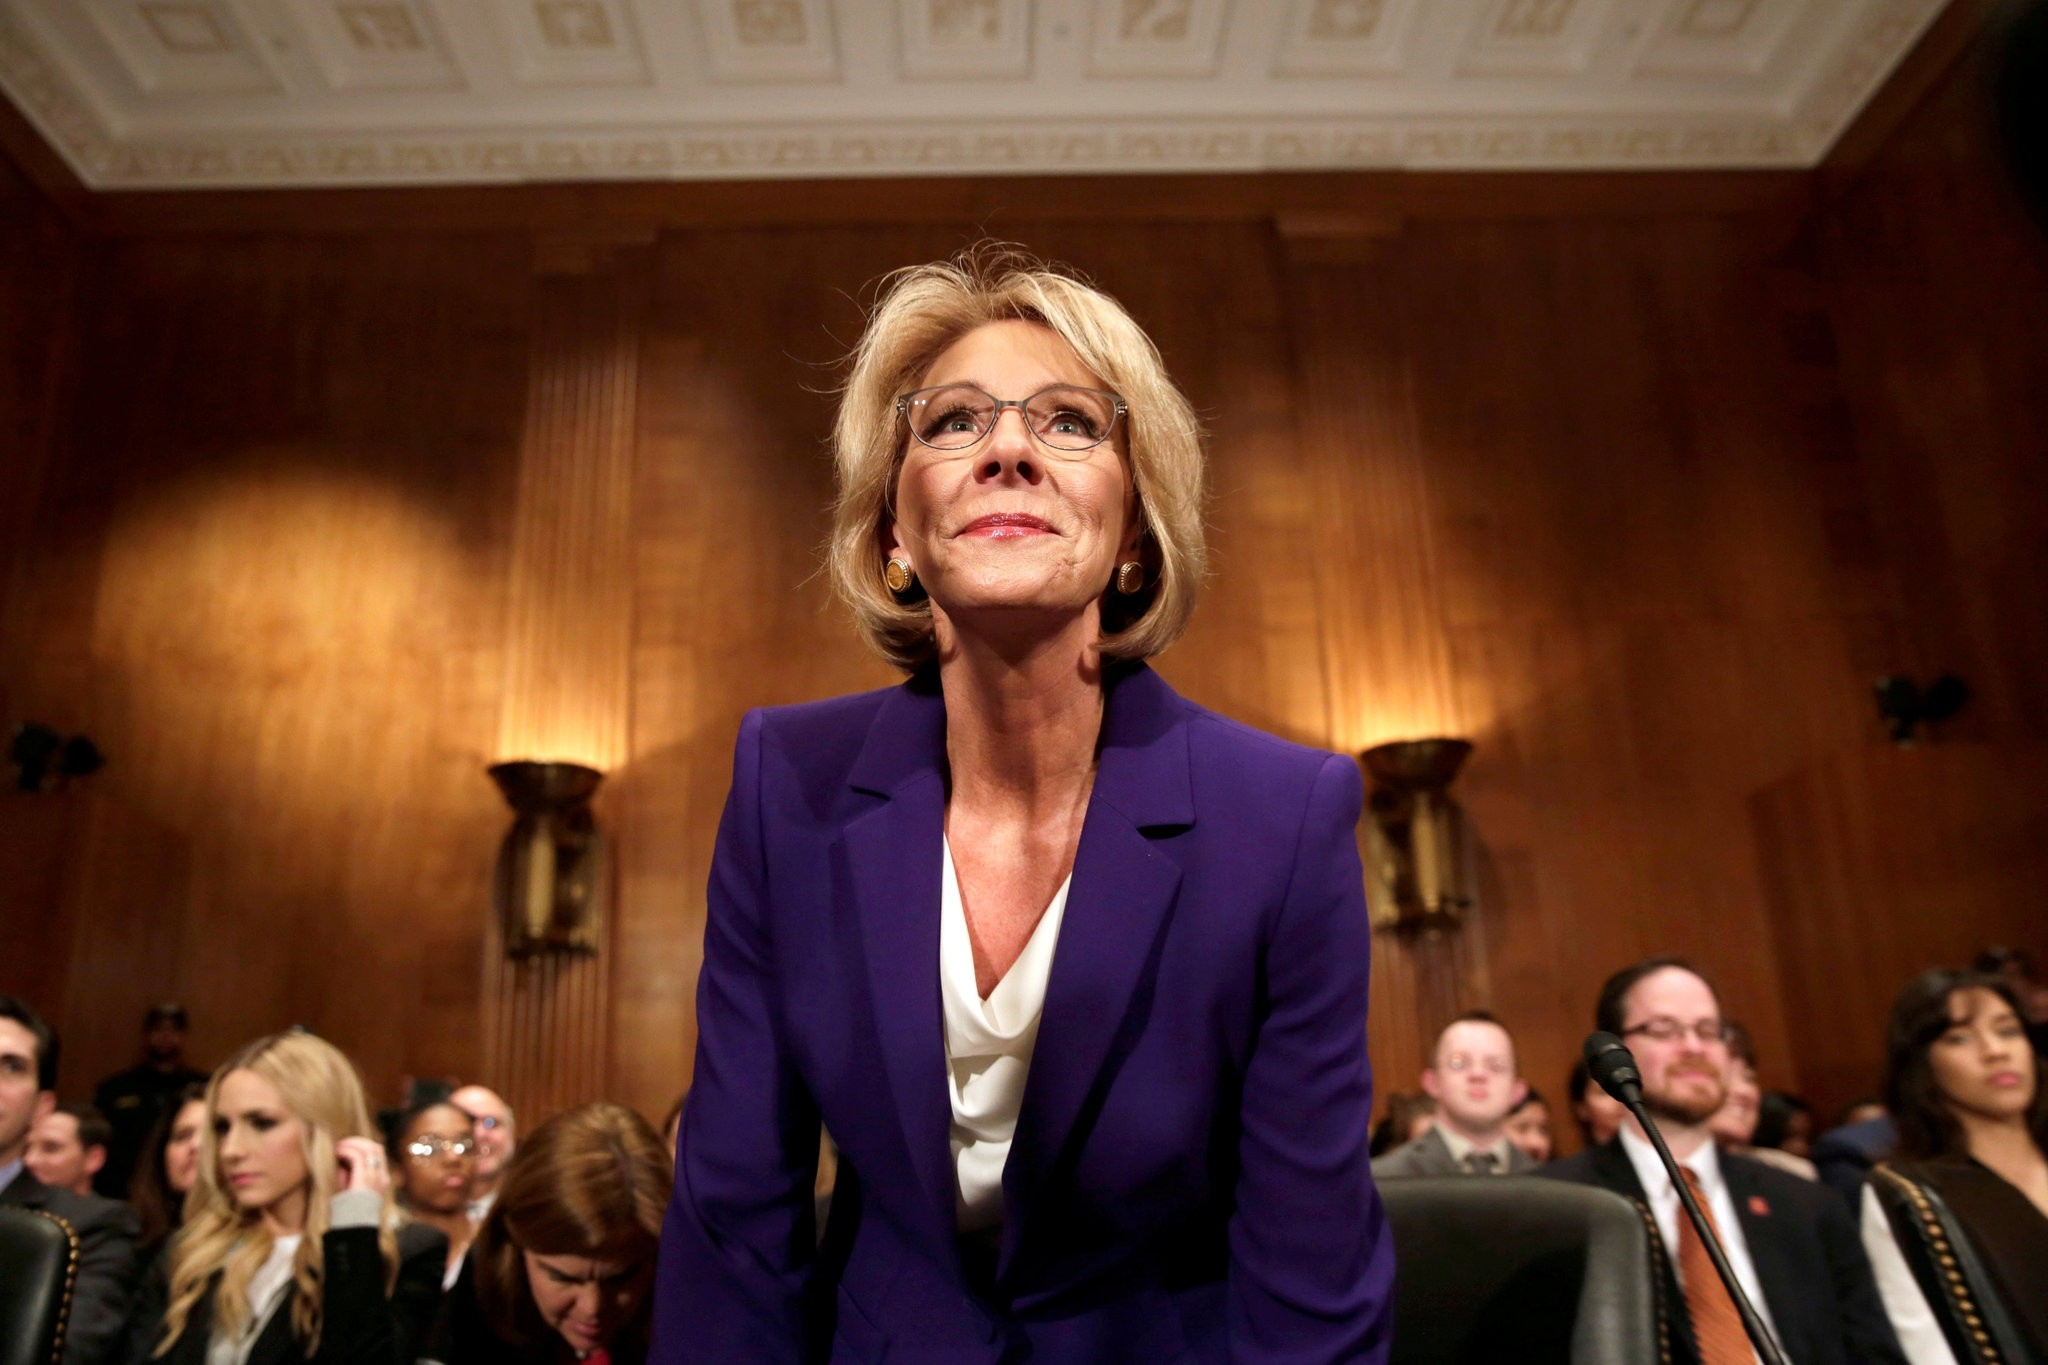 Betsy DeVos arrives at the Senate confirmation hearing to be next Secretary of Education on Capitol Hill in Washington, U.S., January 17, 2017. (REUTERS Photo)